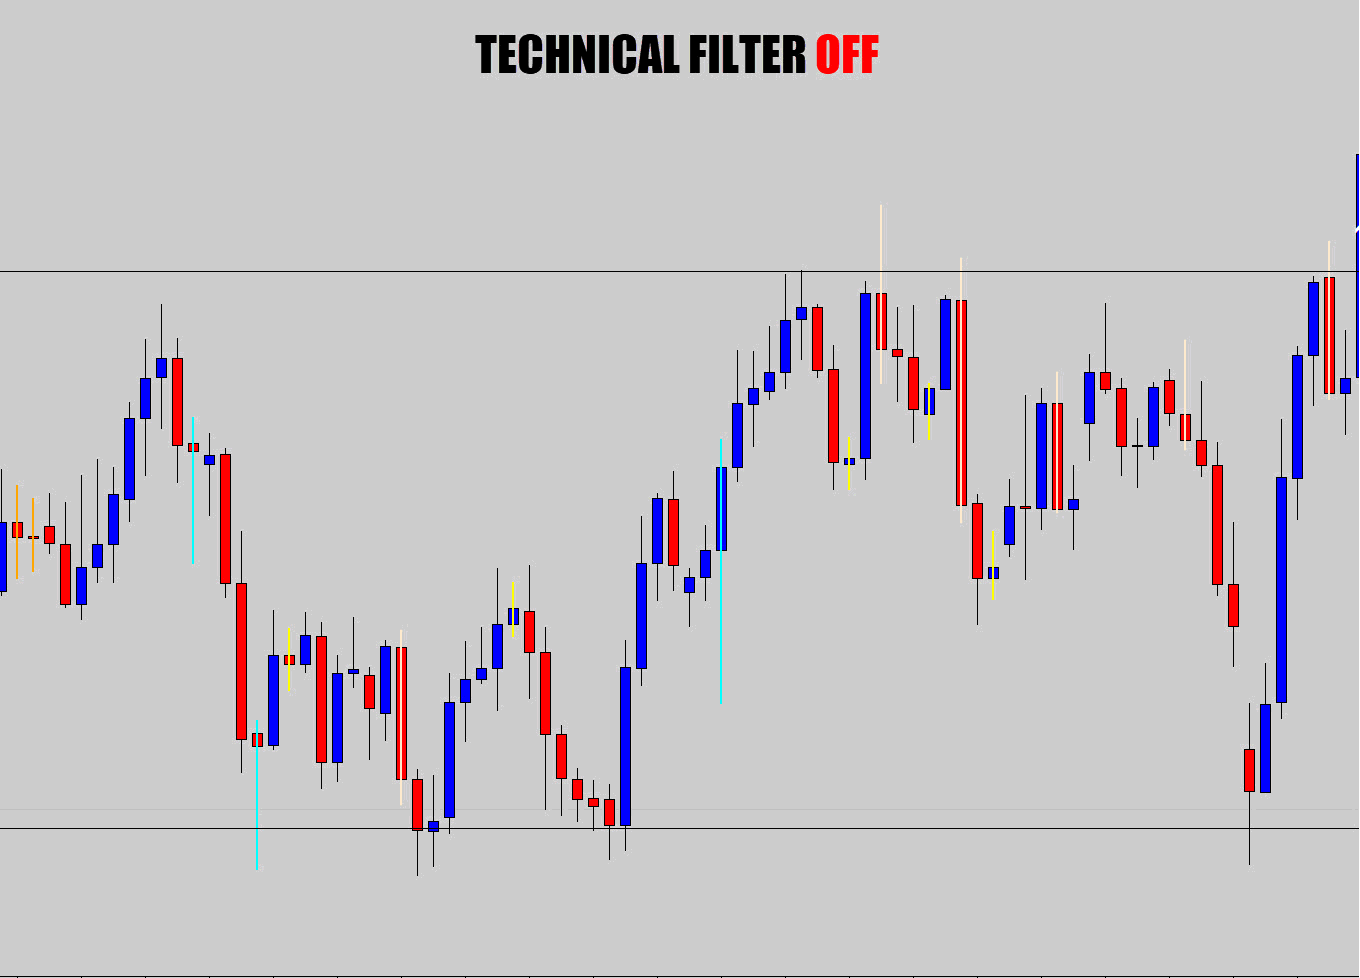 technical filter off in range